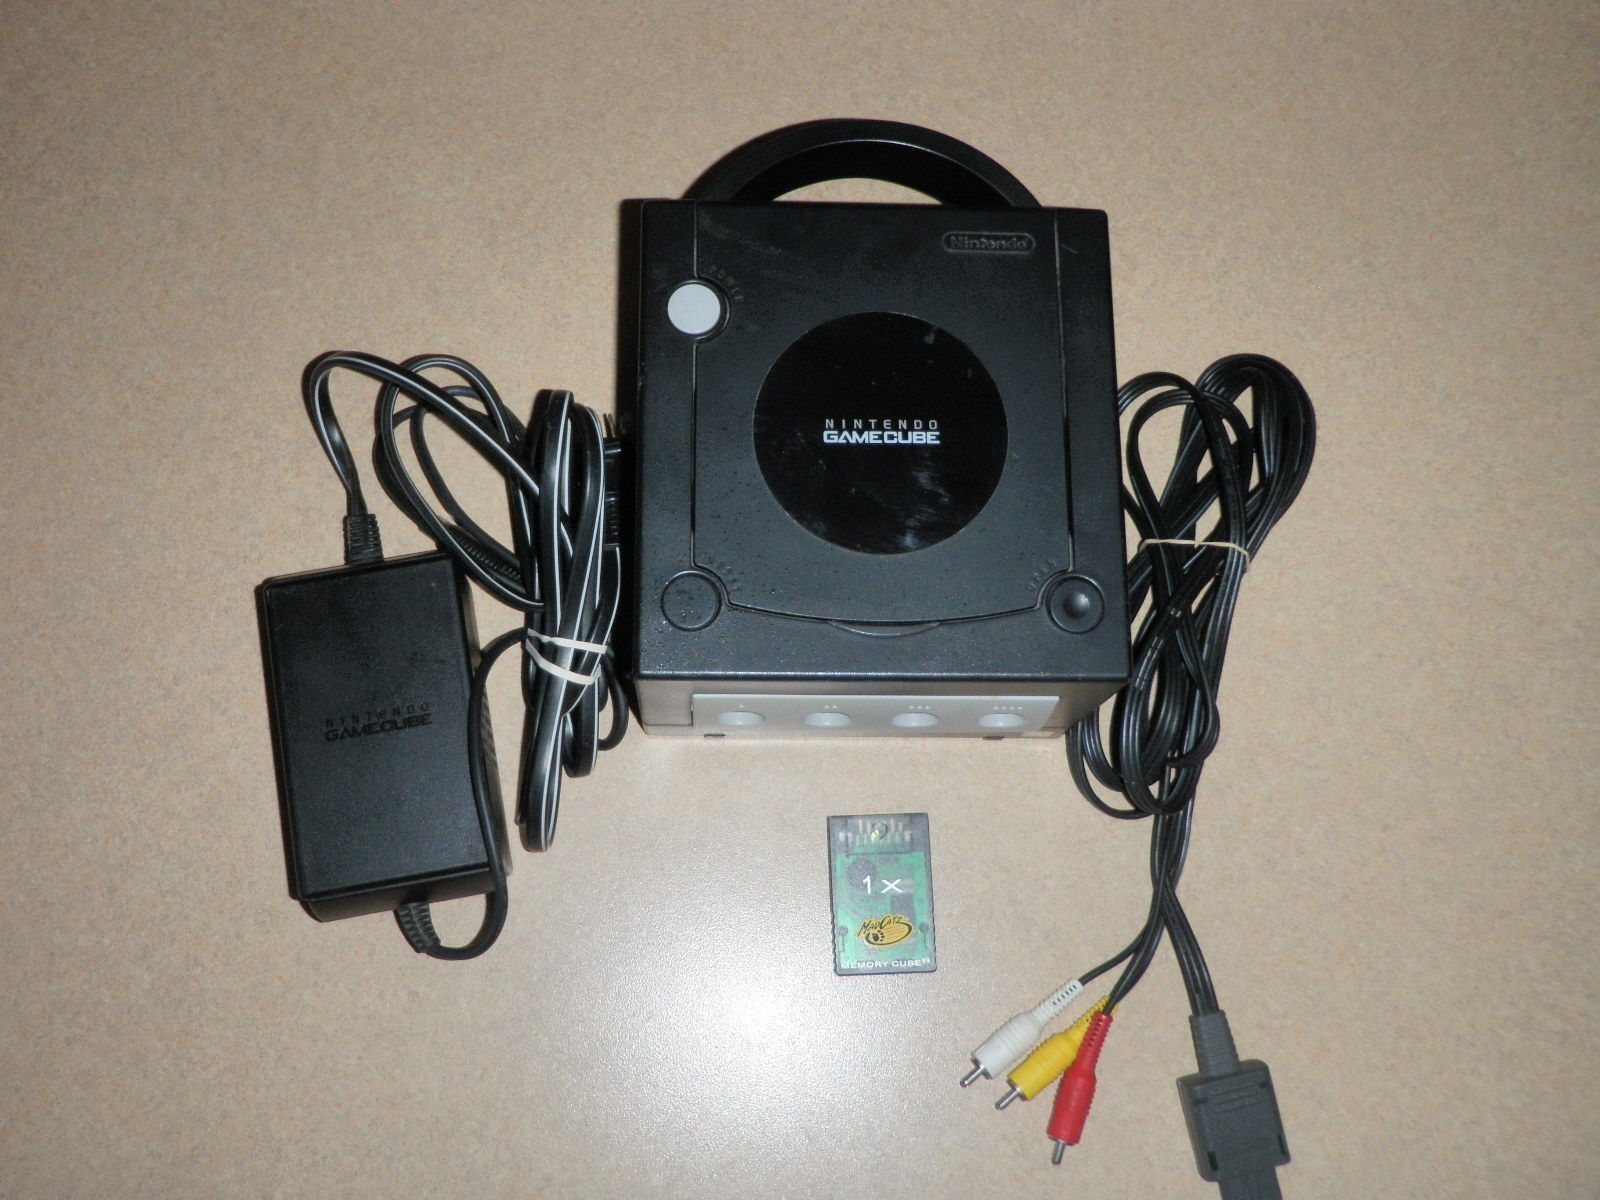 Nintendo GameCube Black Console DOL-101 USA Mad Catz Memory Cube 1X TESTED WORKS